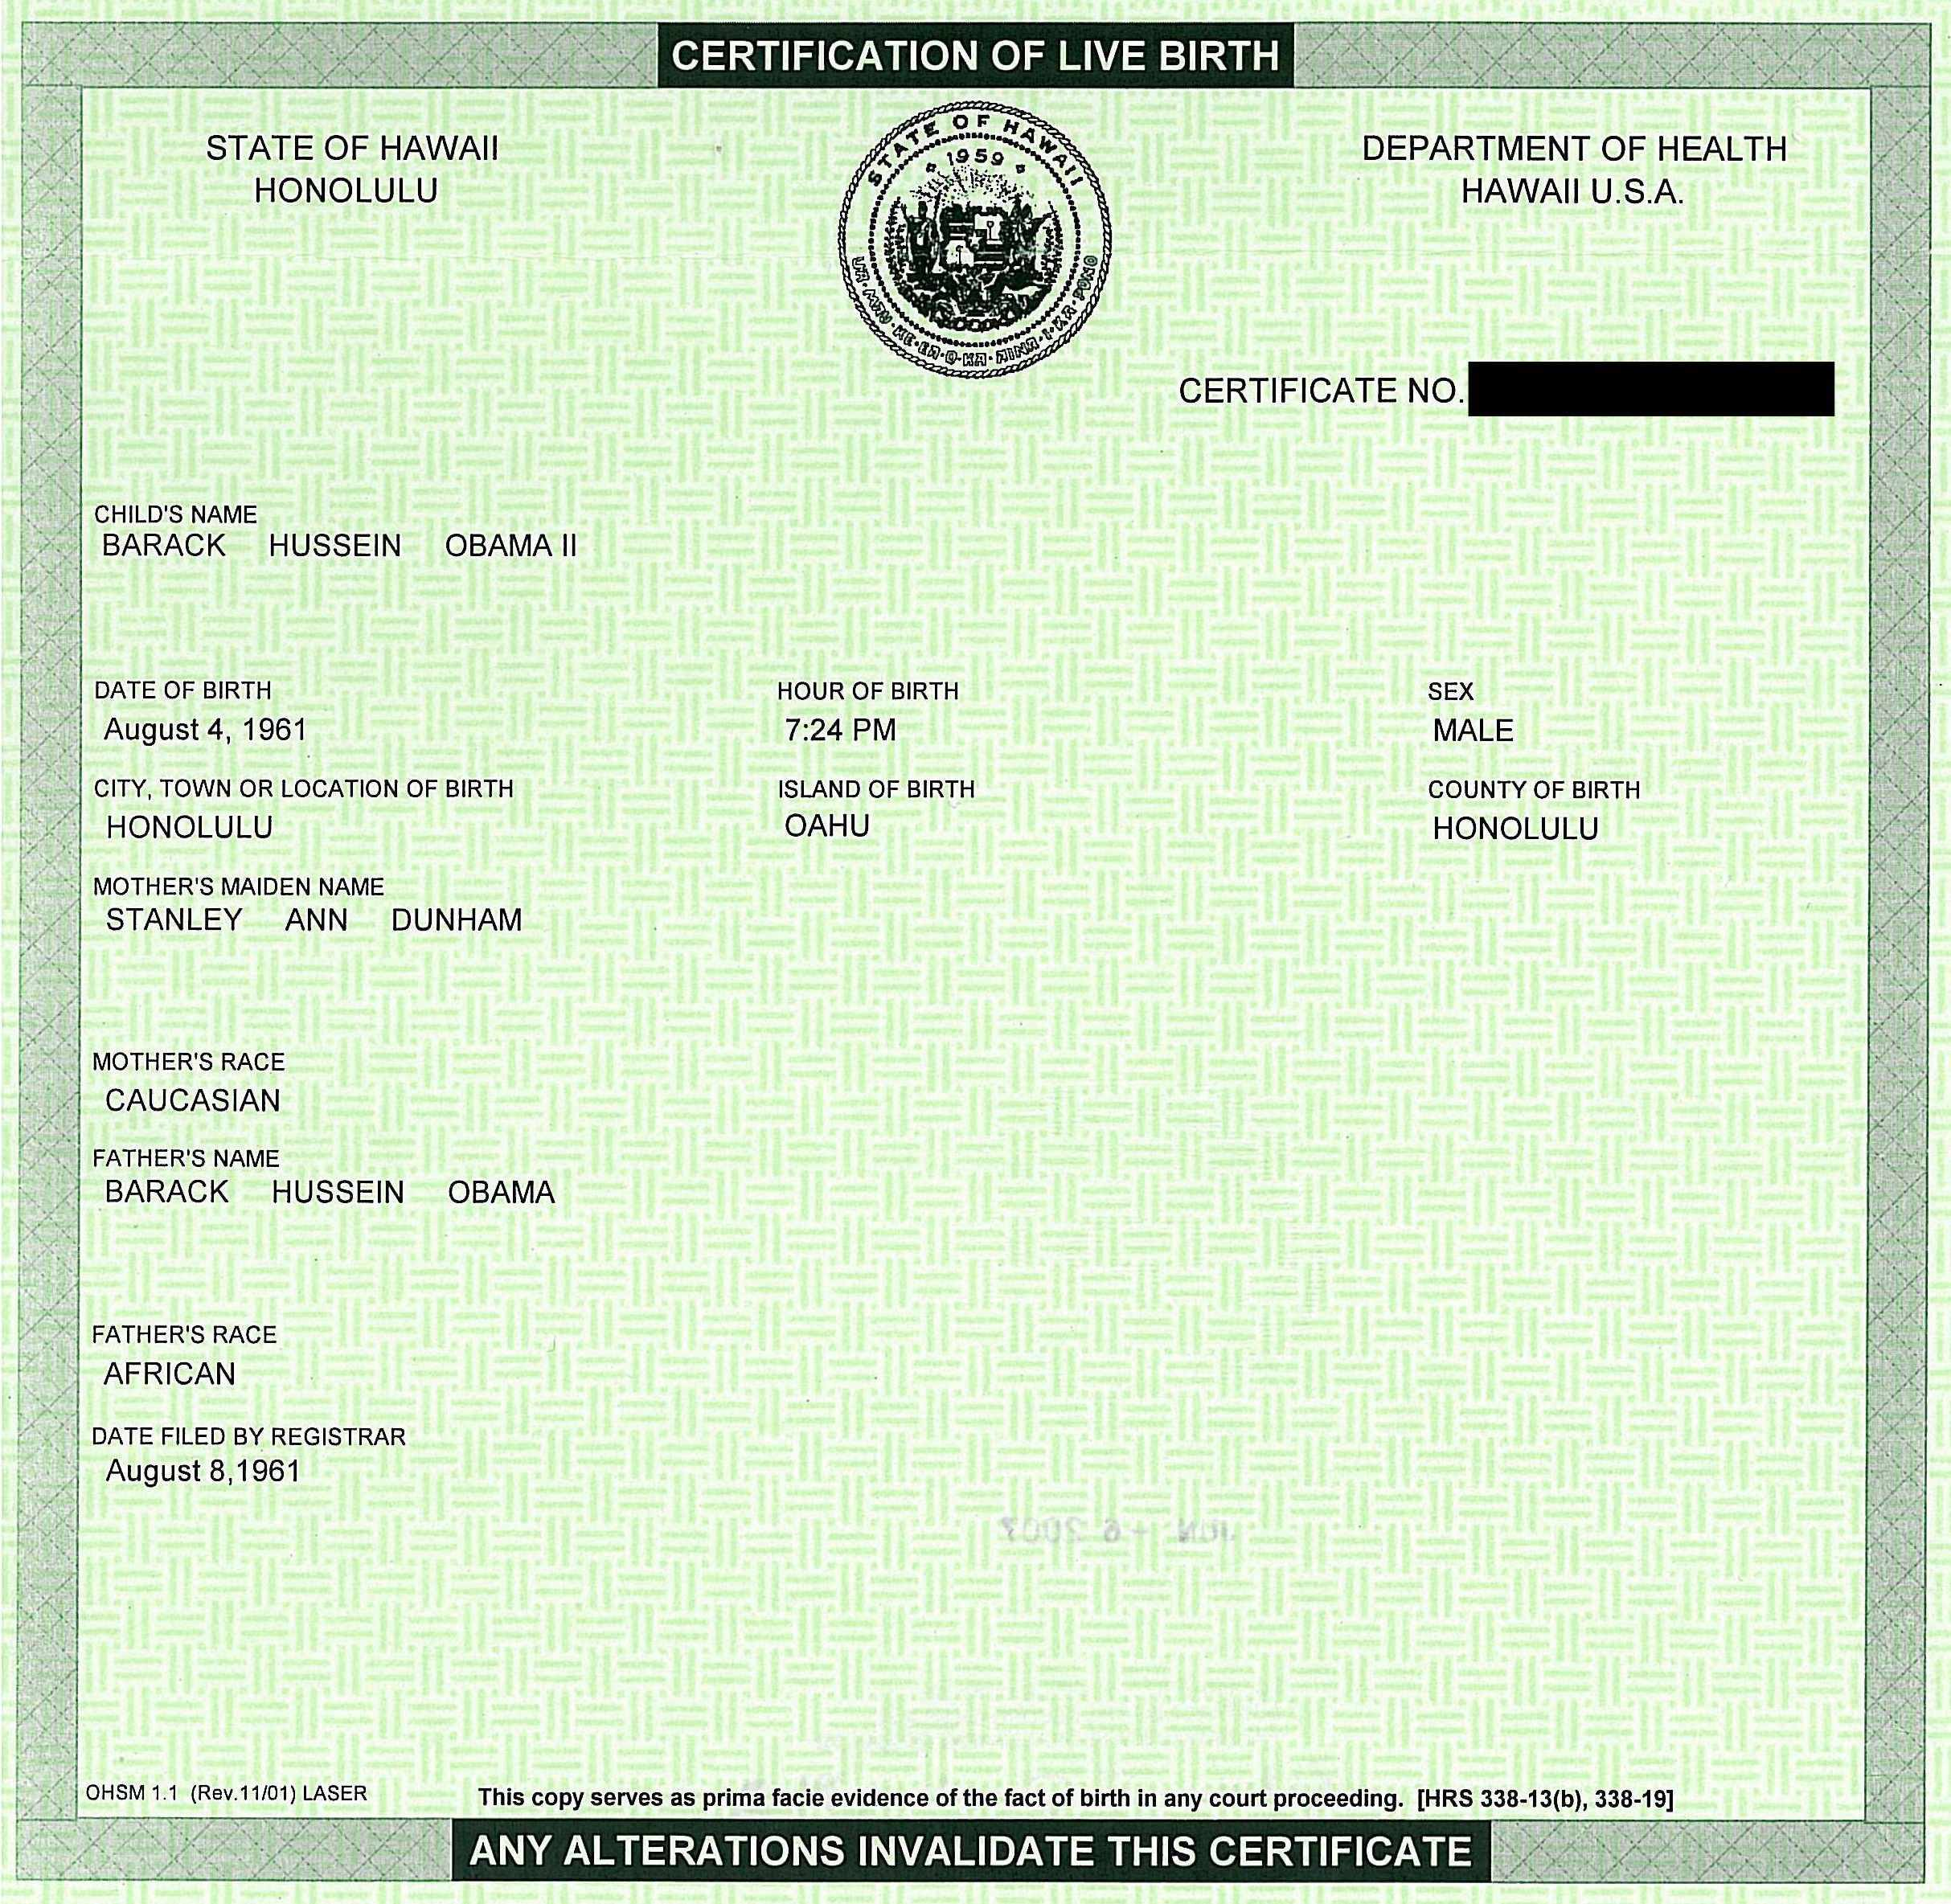 Filebarackobamacertificationoflivebirthhawaiig Wikimedia Commons